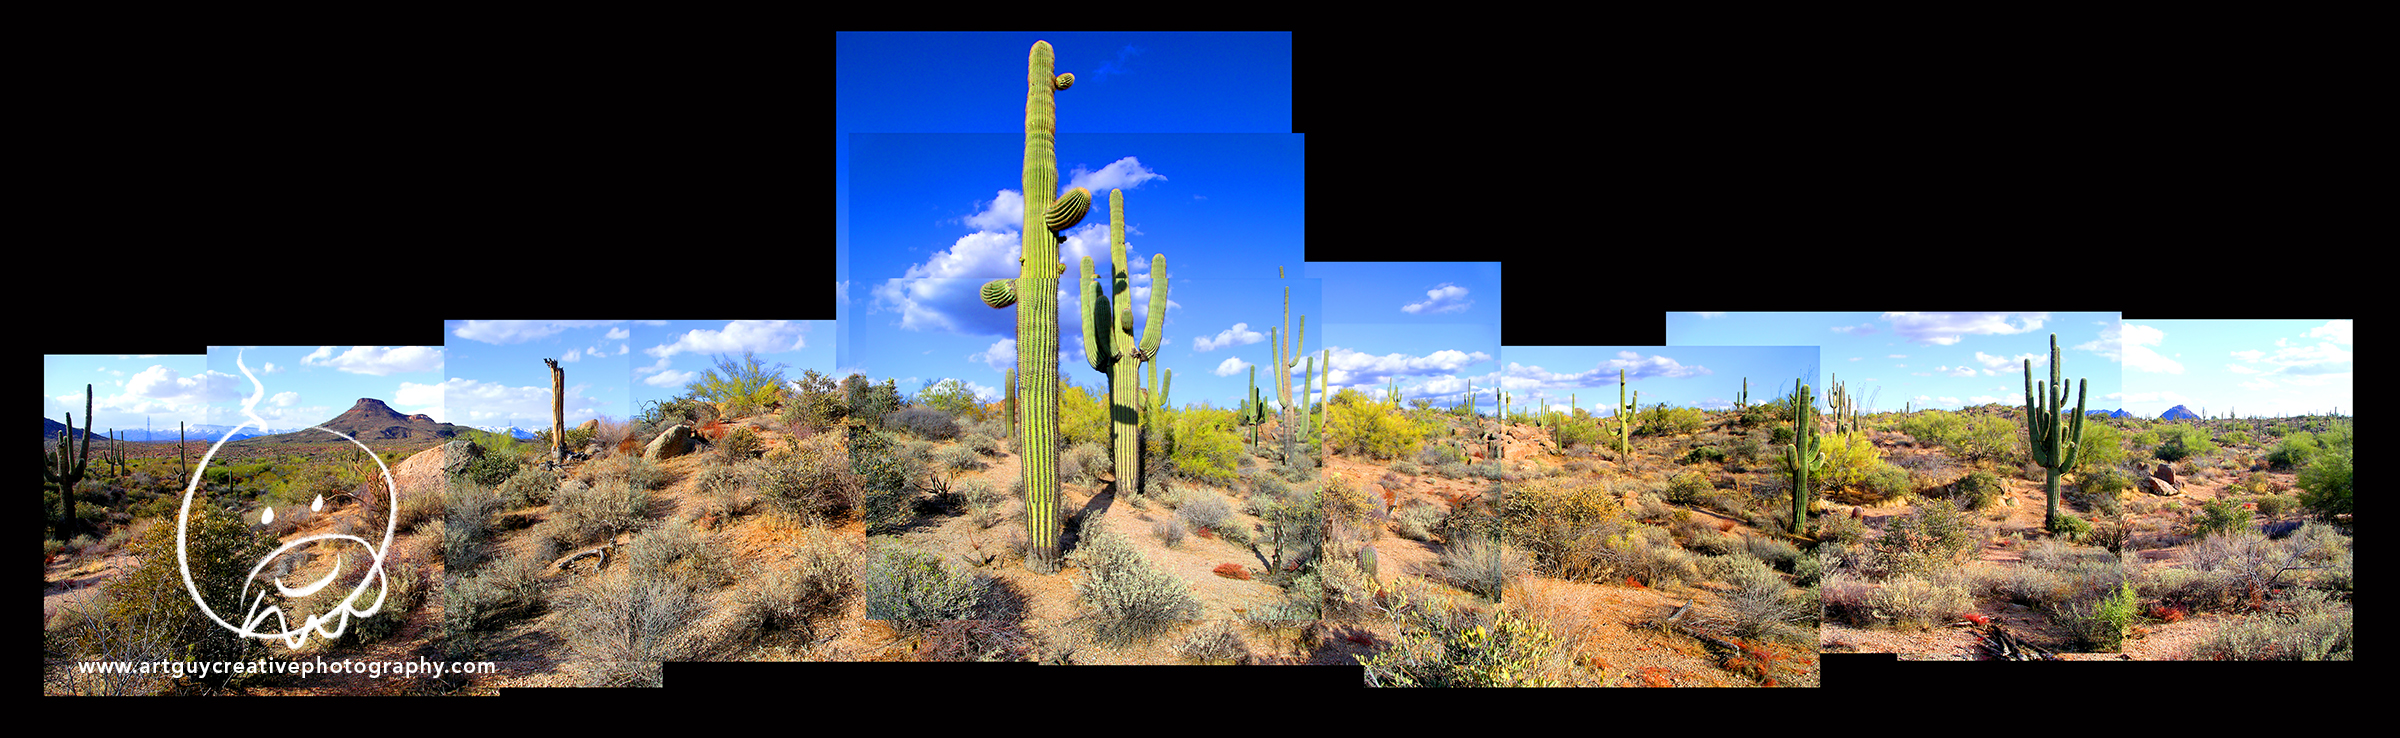 Arizona Desert Photography Desert Saguaro